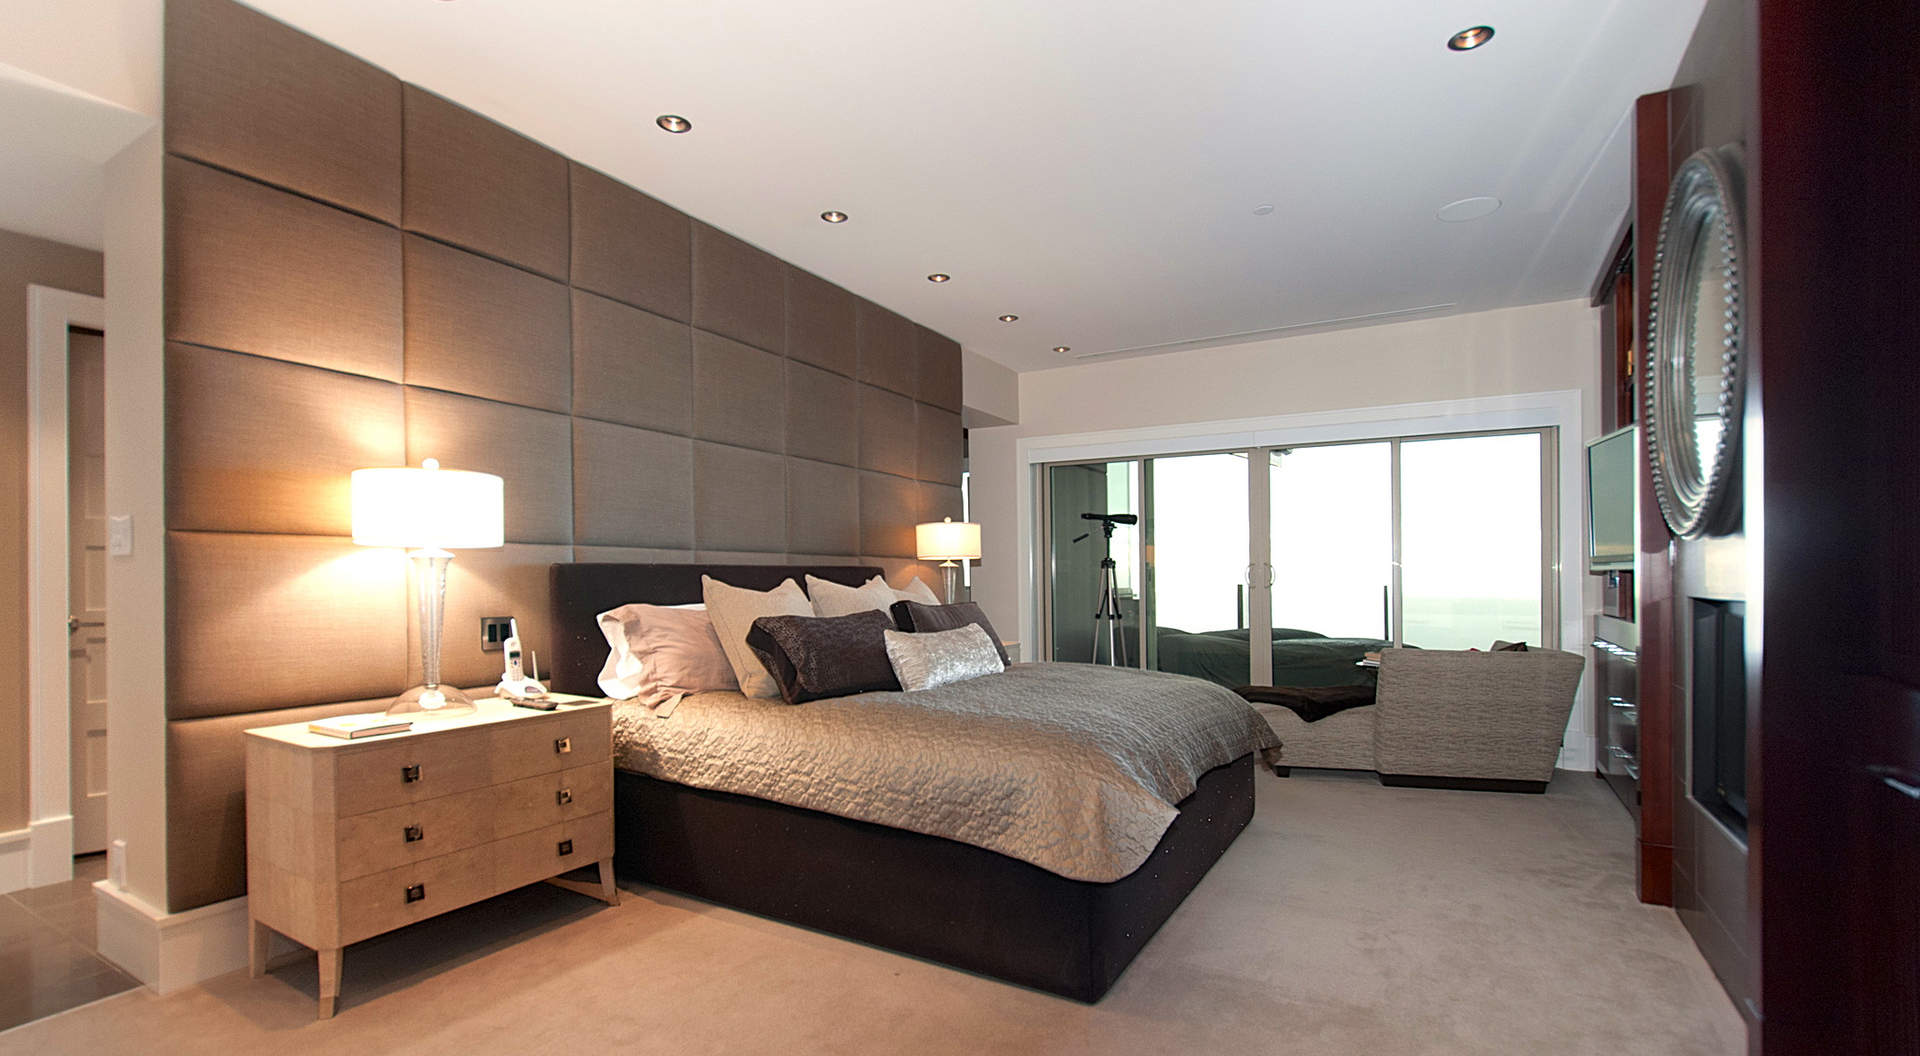 Penthouse master bedroom interior design ideas for Master bedroom designs